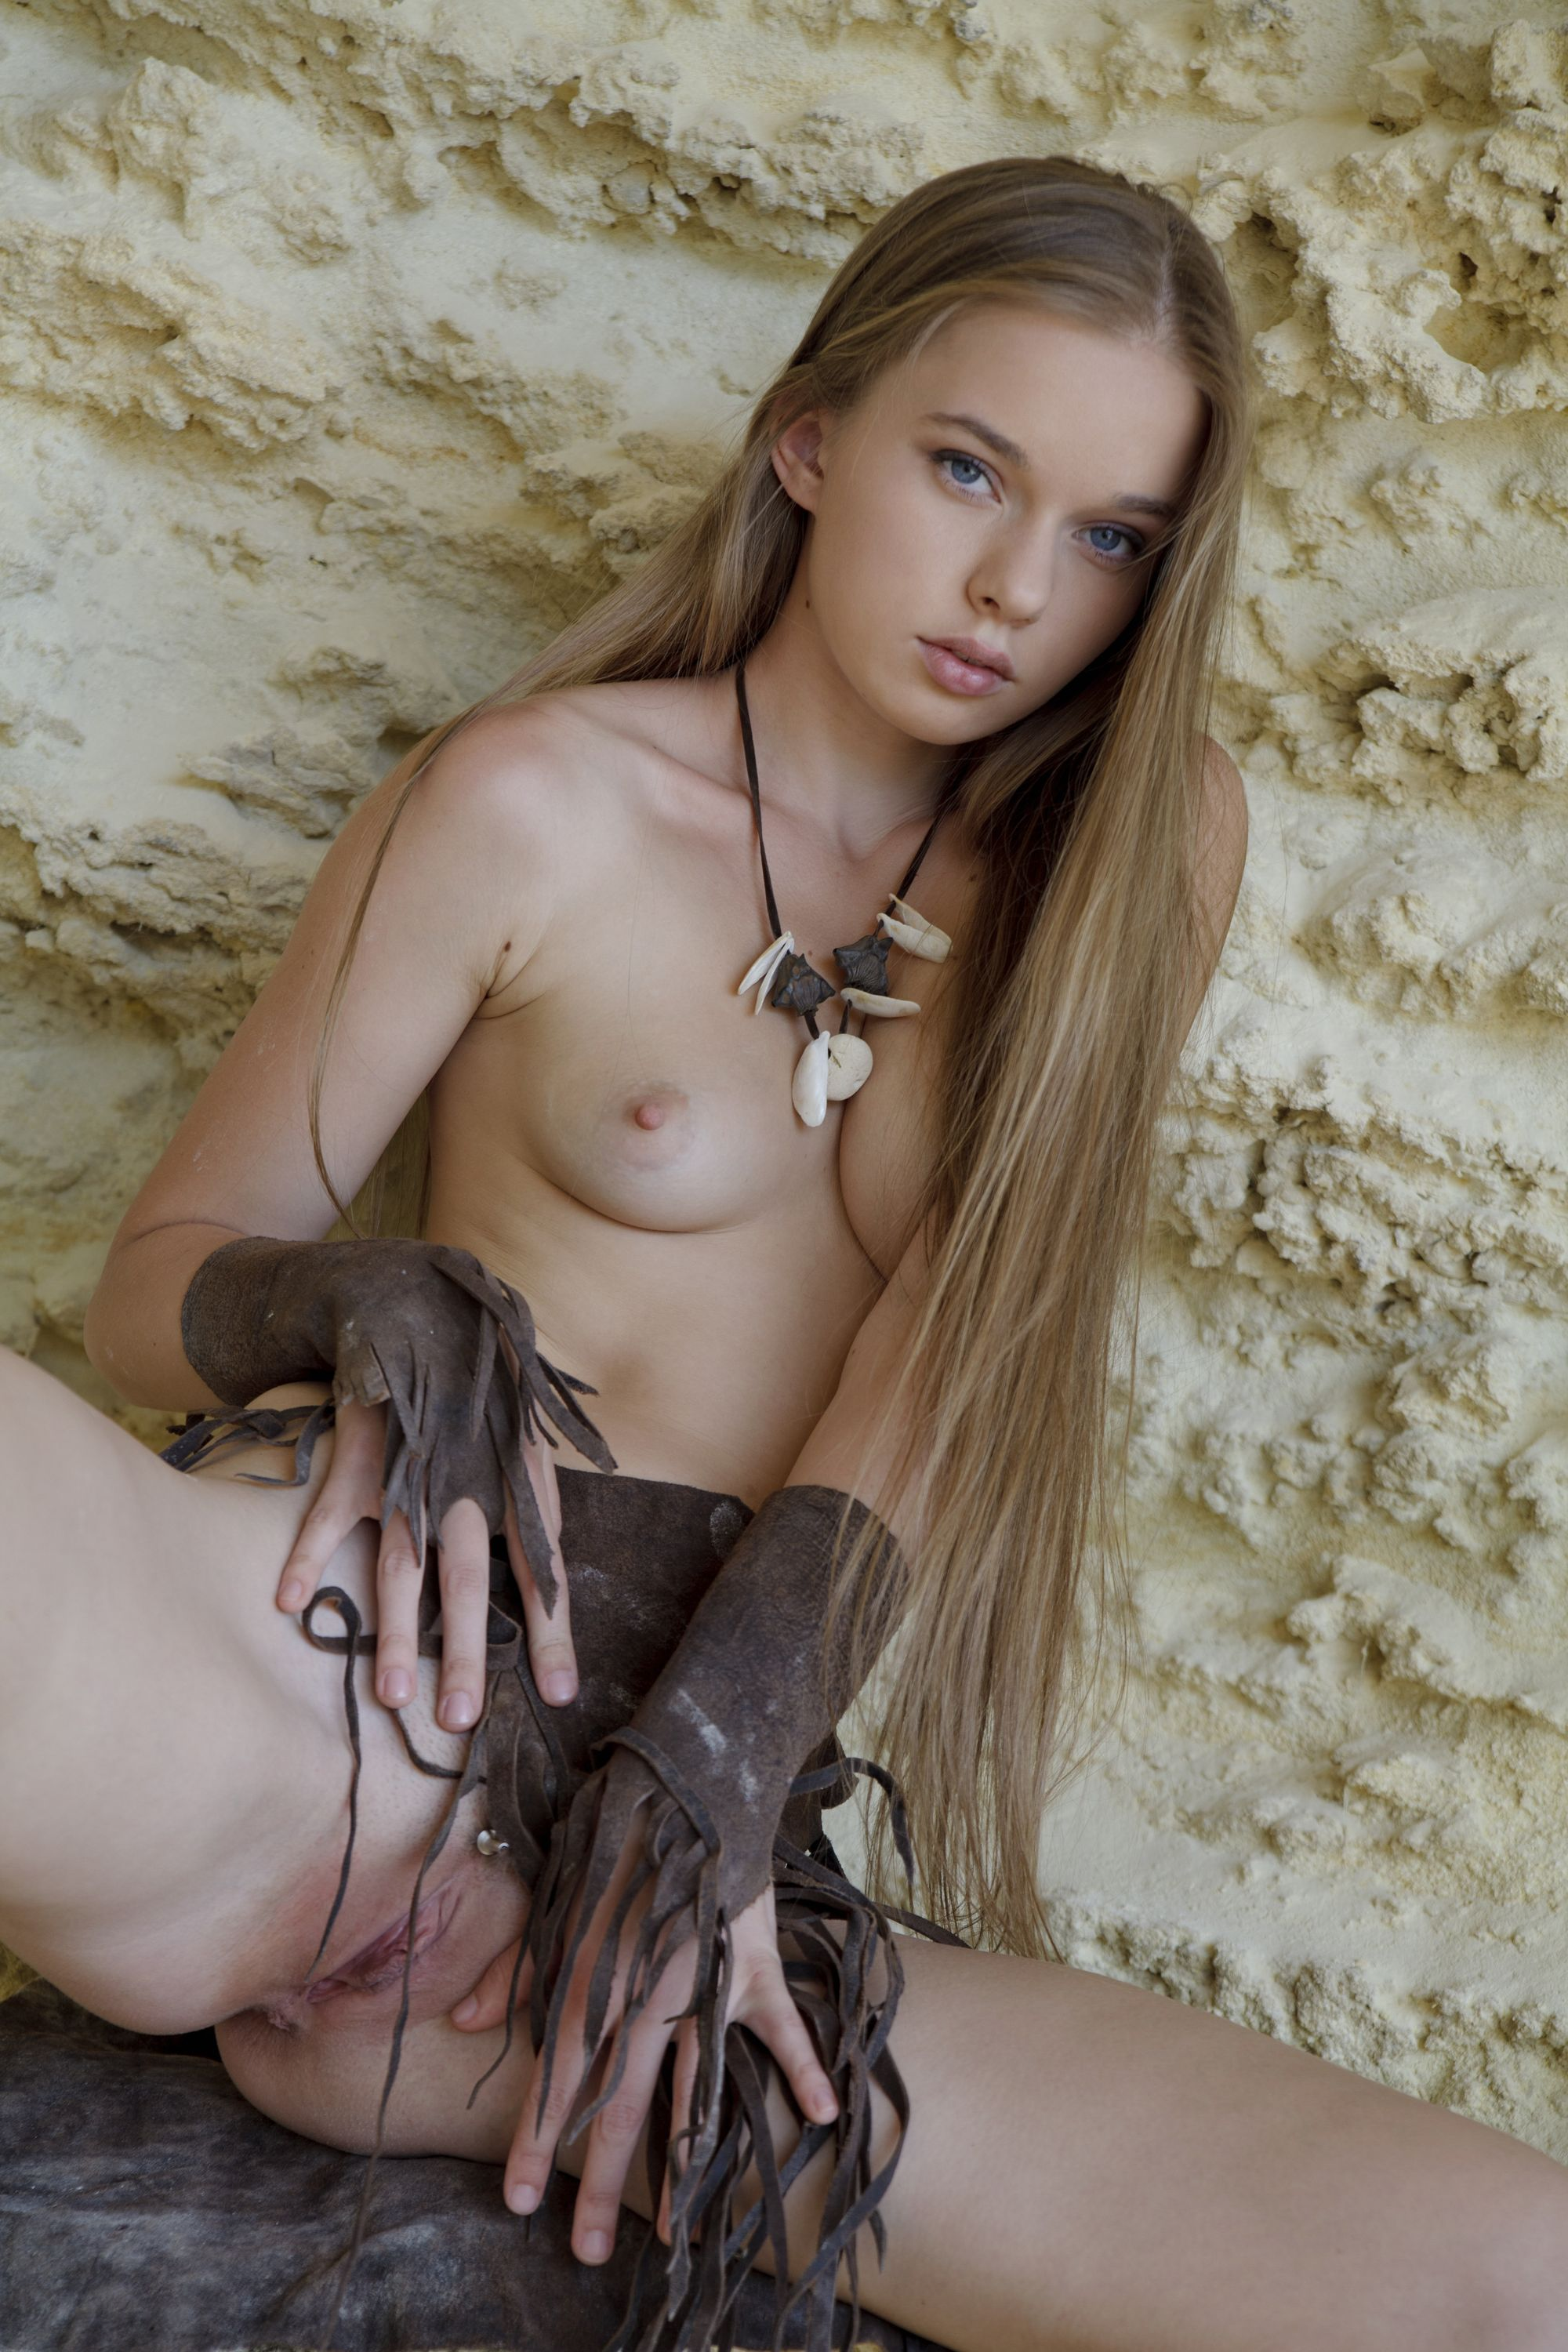 pictures-of-naked-teenage-girl-pictures-bearutiful-dwarf-women-naked